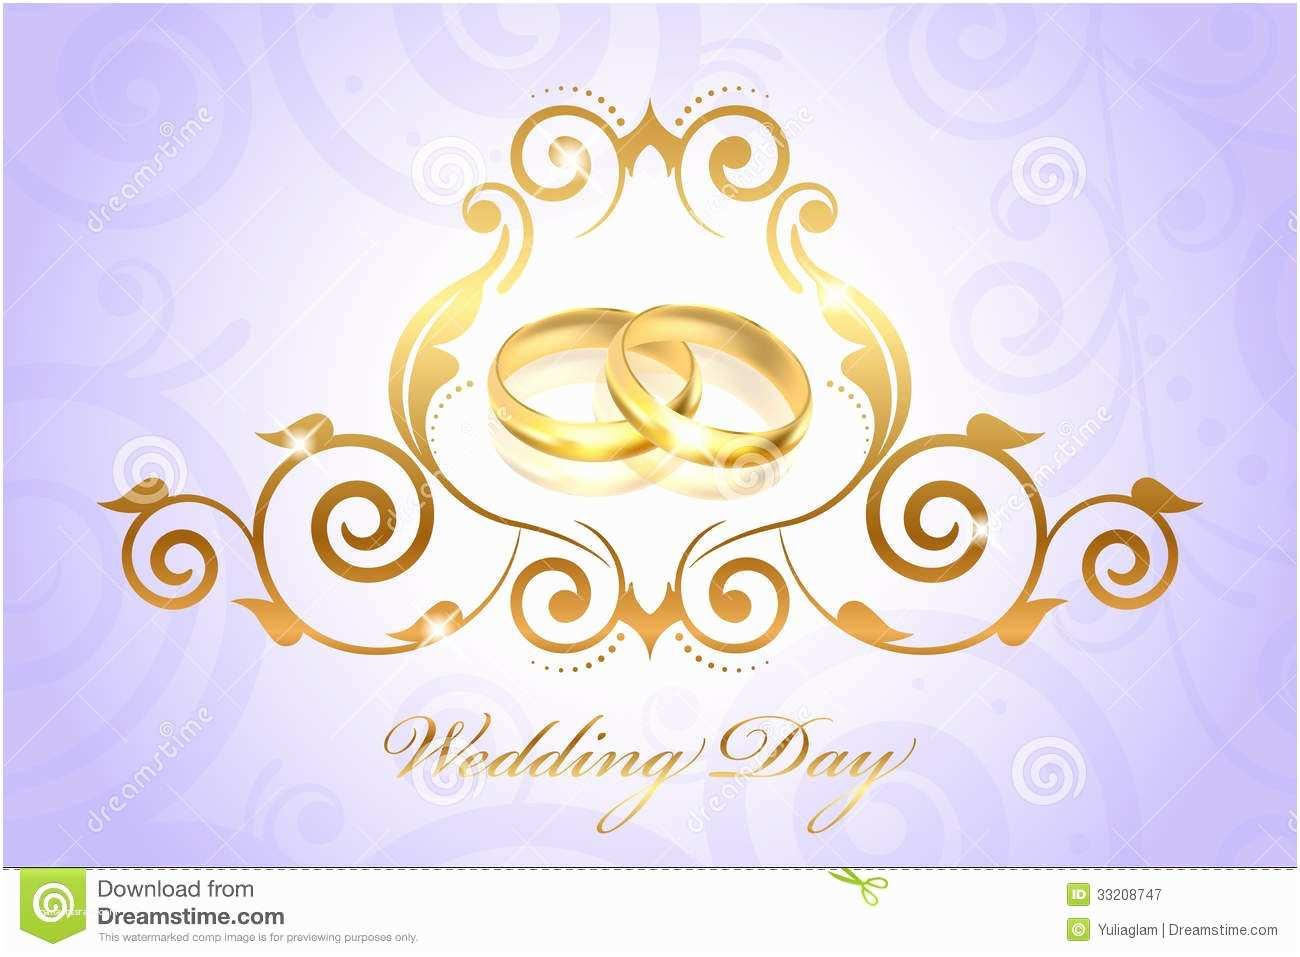 Ring In the New Year Wedding Invite Vintage Style Wedding Invitation with Gold Rings Royalty